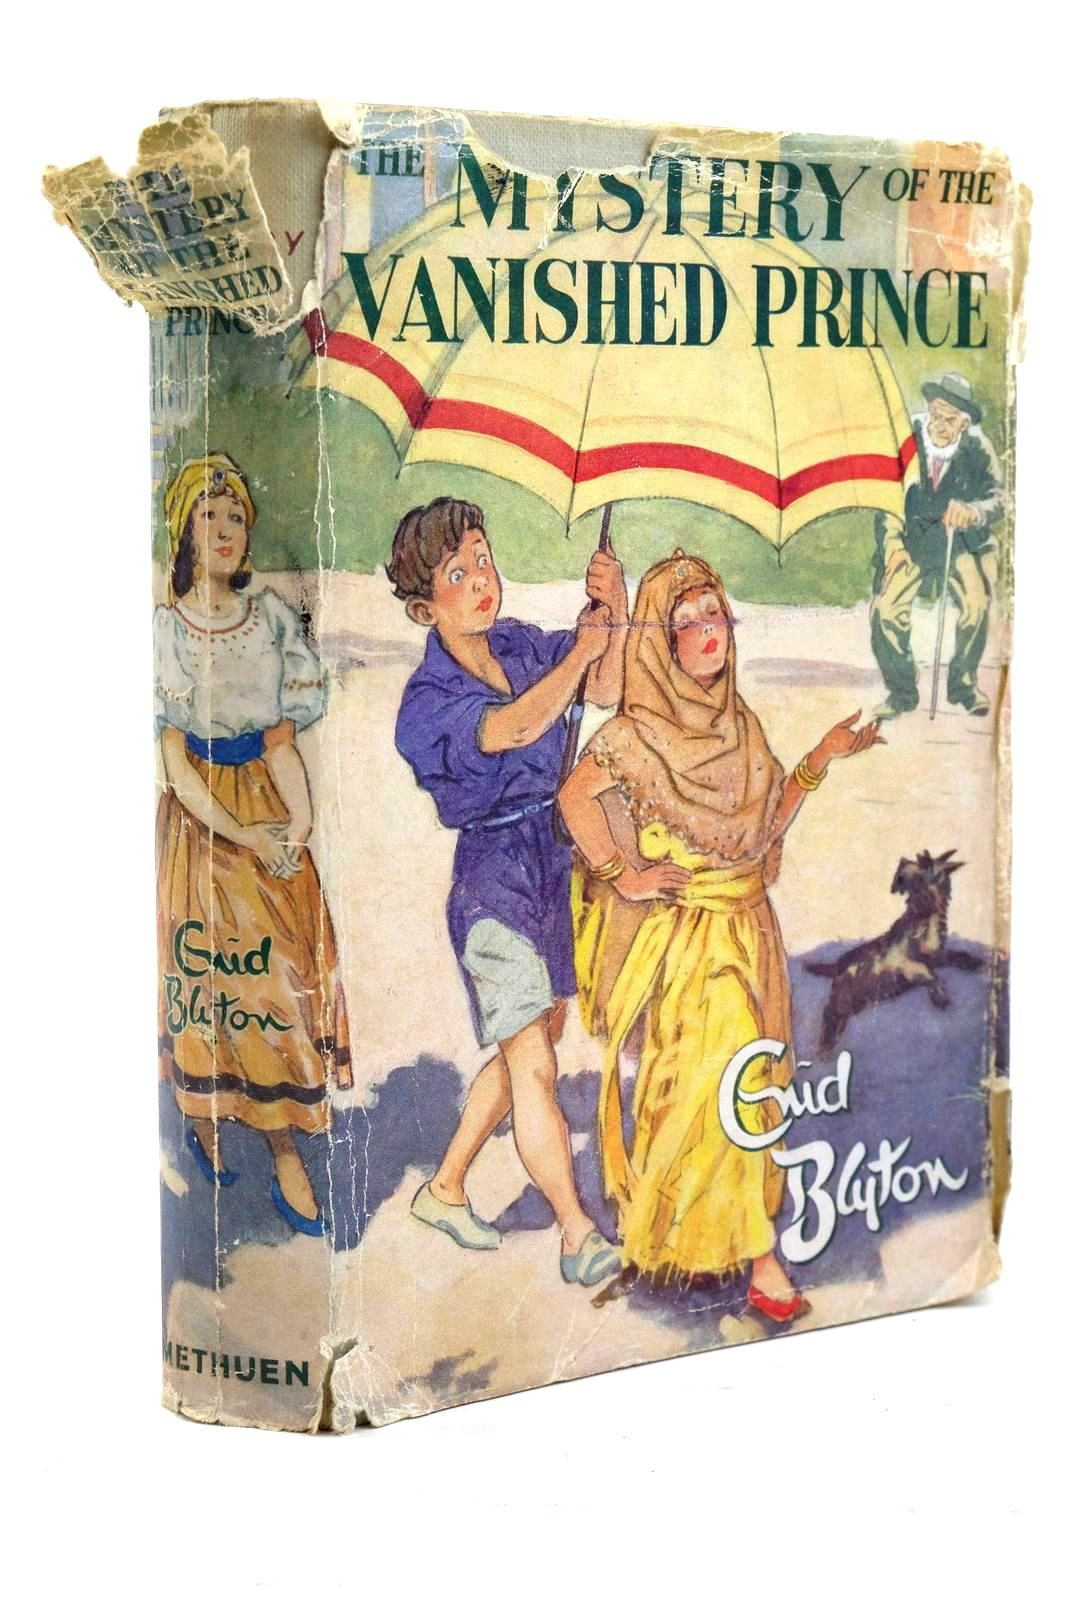 Photo of THE MYSTERY OF THE VANISHED PRINCE written by Blyton, Enid illustrated by Evans, Treyer published by Methuen & Co. Ltd. (STOCK CODE: 1320718)  for sale by Stella & Rose's Books